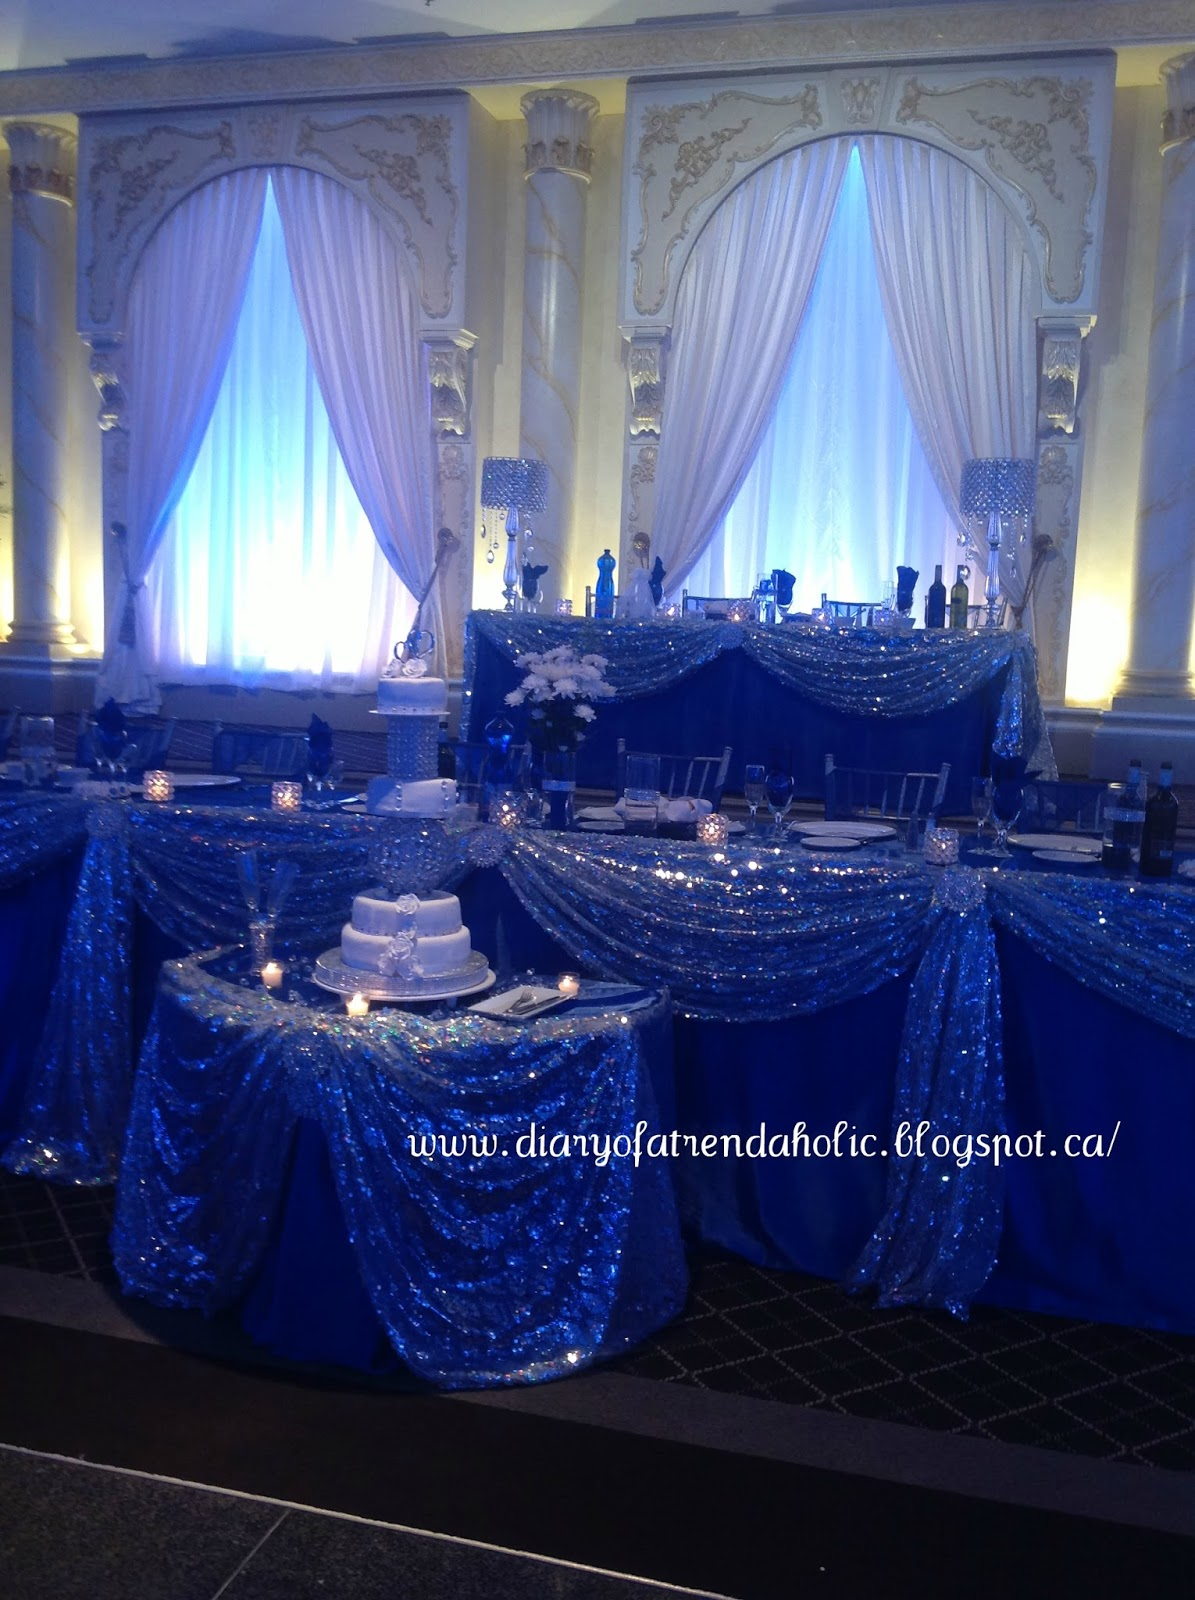 Ice blue and silver wedding decorations silver and ice blue wedding ice blue and silver wedding decorations diary of a trendaholic blue and silver wedding junglespirit Image collections